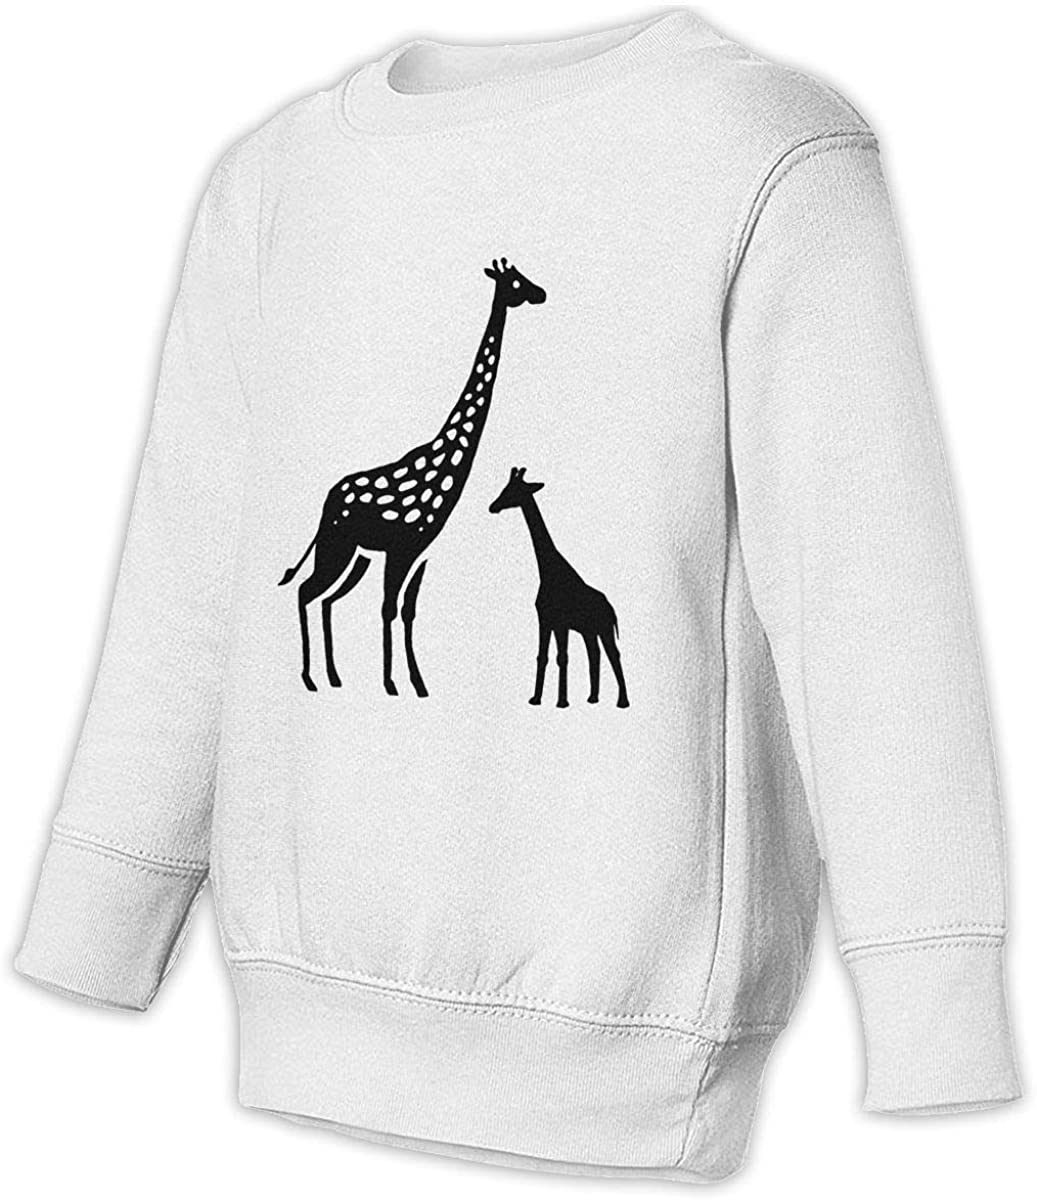 wudici Giraffe Boys Girls Pullover Sweaters Crewneck Sweatshirts Clothes for 2-6 Years Old Children